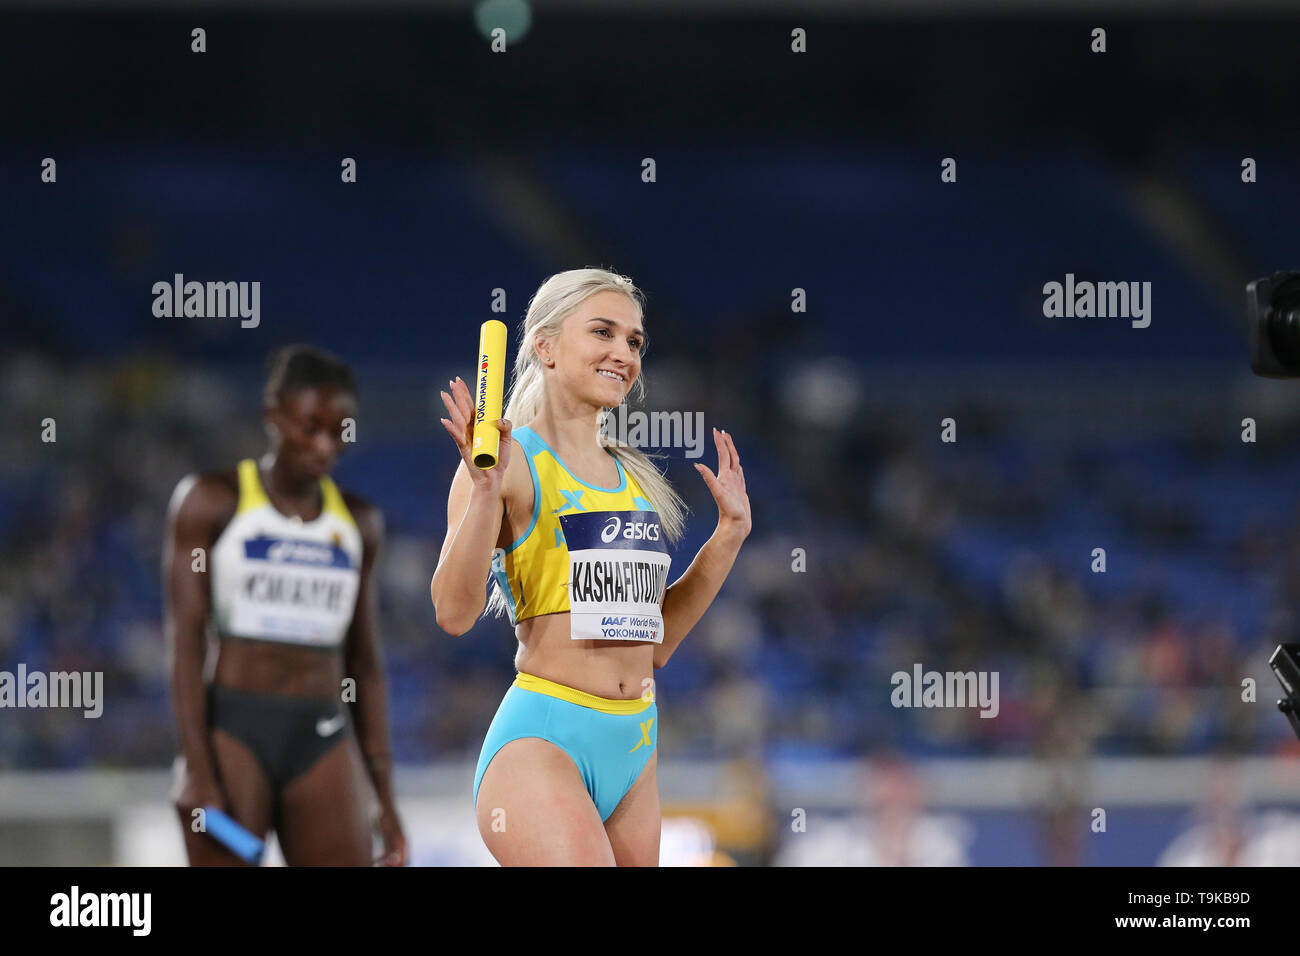 YOKOHAMA, JAPAN - MAY 10: Rima Kashafutdinova of Kazakhstan at the start of the women's 4x100m relay during Day 1 of the 2019 IAAF World Relay Championships at the Nissan Stadium on Saturday May 11, 2019 in Yokohama, Japan. (Photo by Roger Sedres for the IAAF) - Stock Image